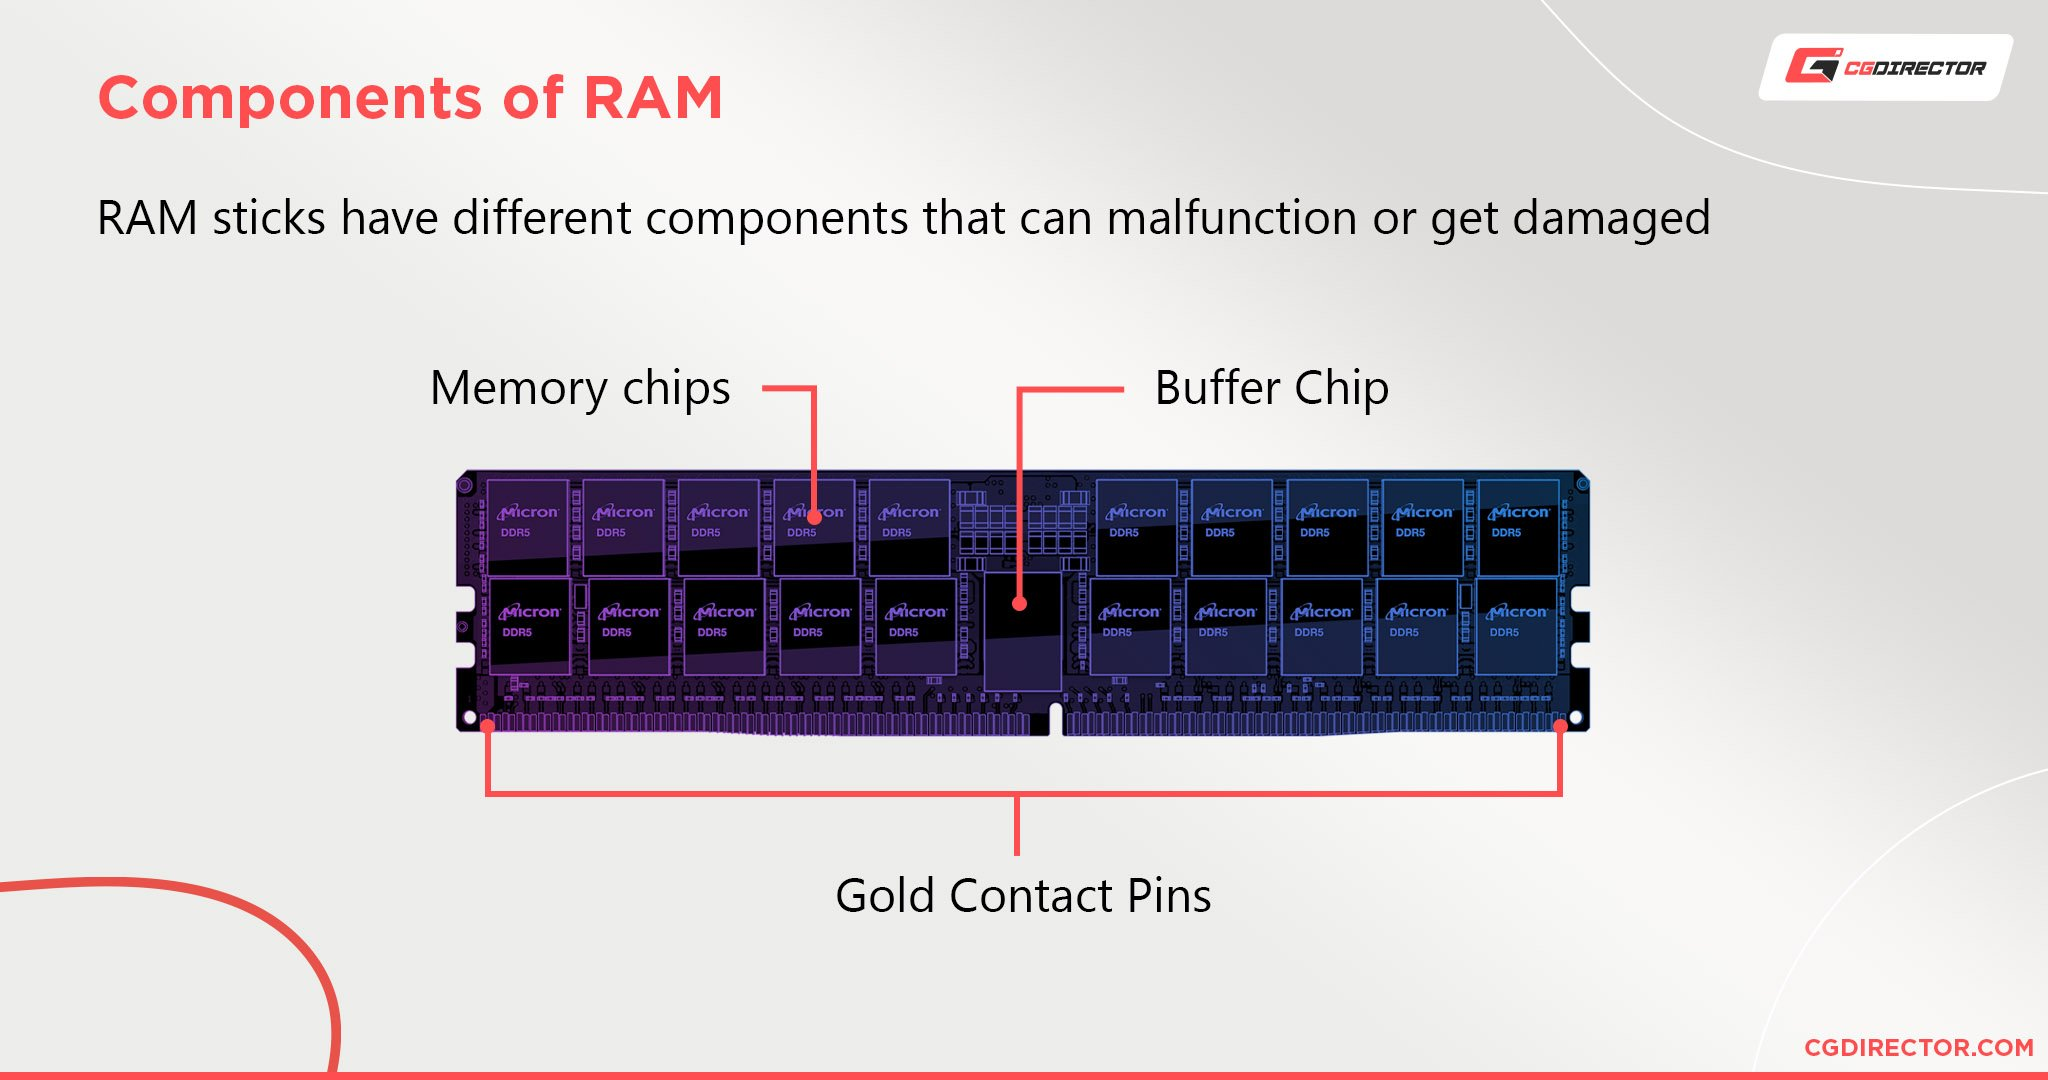 Components of RAM - an overview